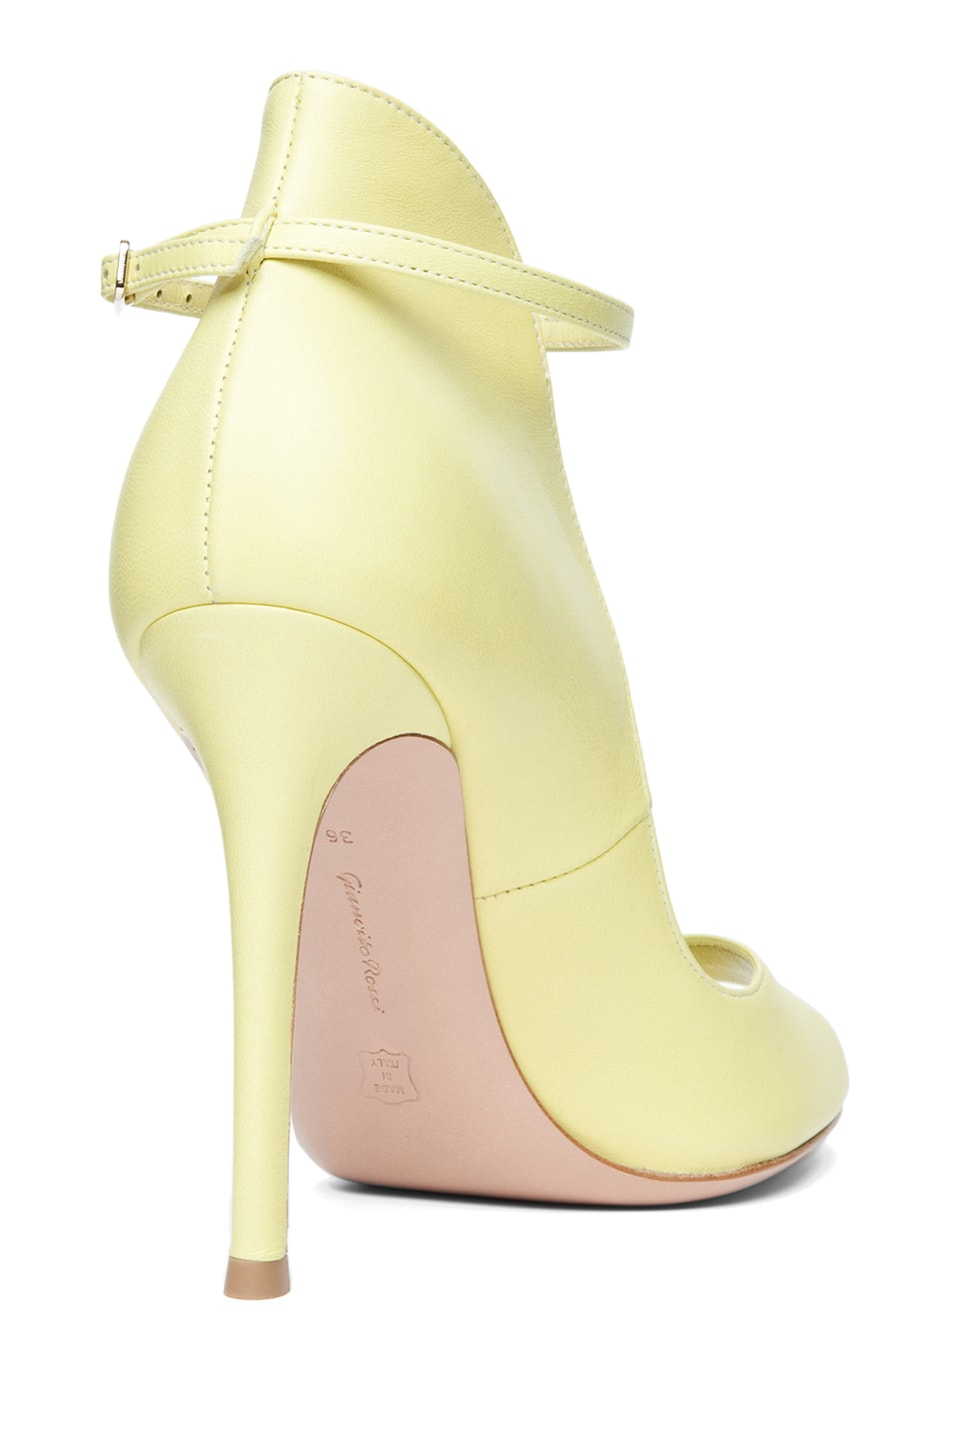 Image 3 of Gianvito Rossi Nappy Leather Open Toe Heel in Lemon